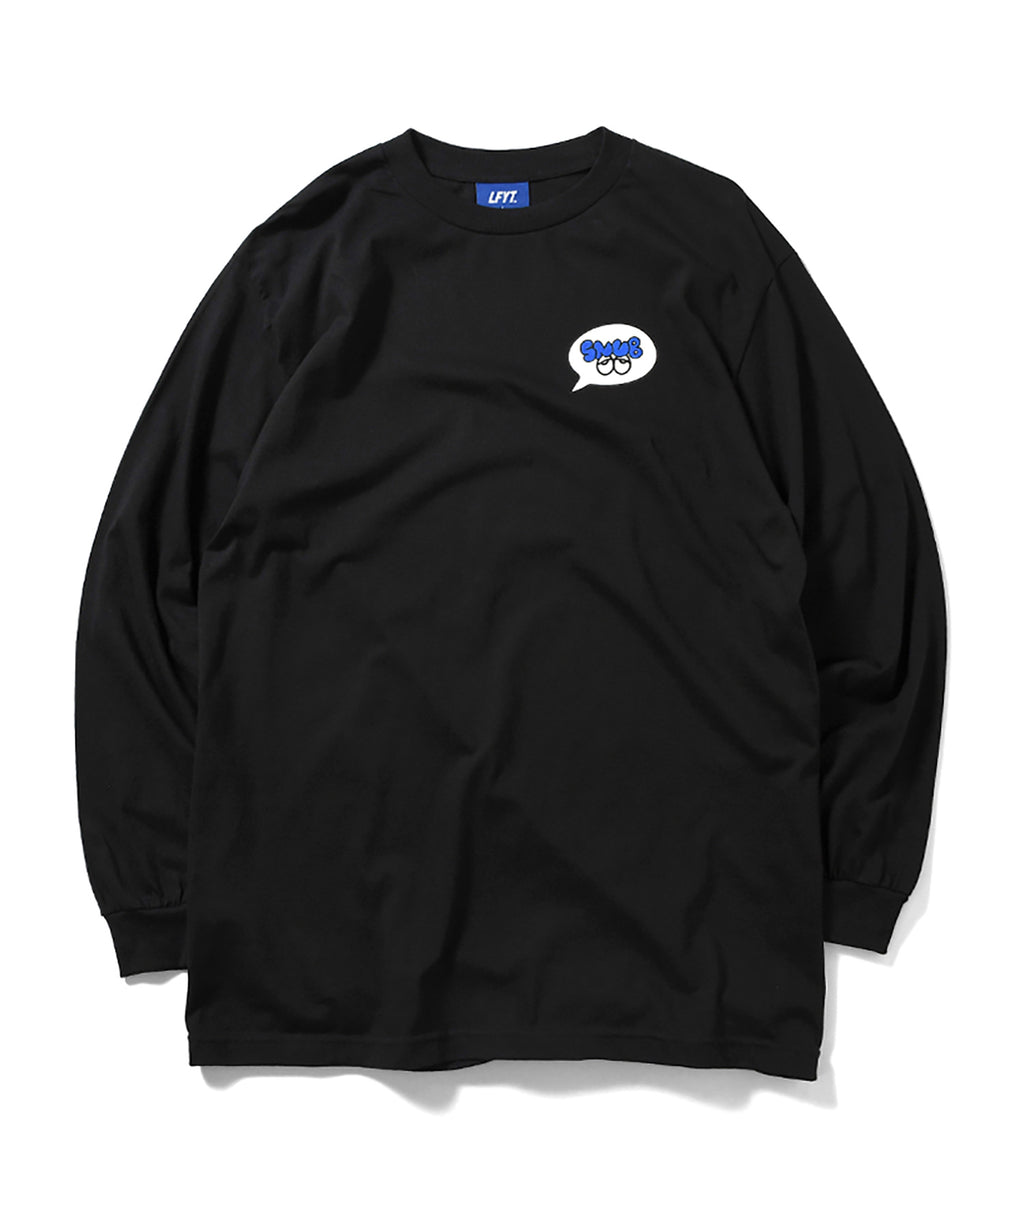 LFYT x Rabuns - THROW UP L/S TEE LA200103 BLACK